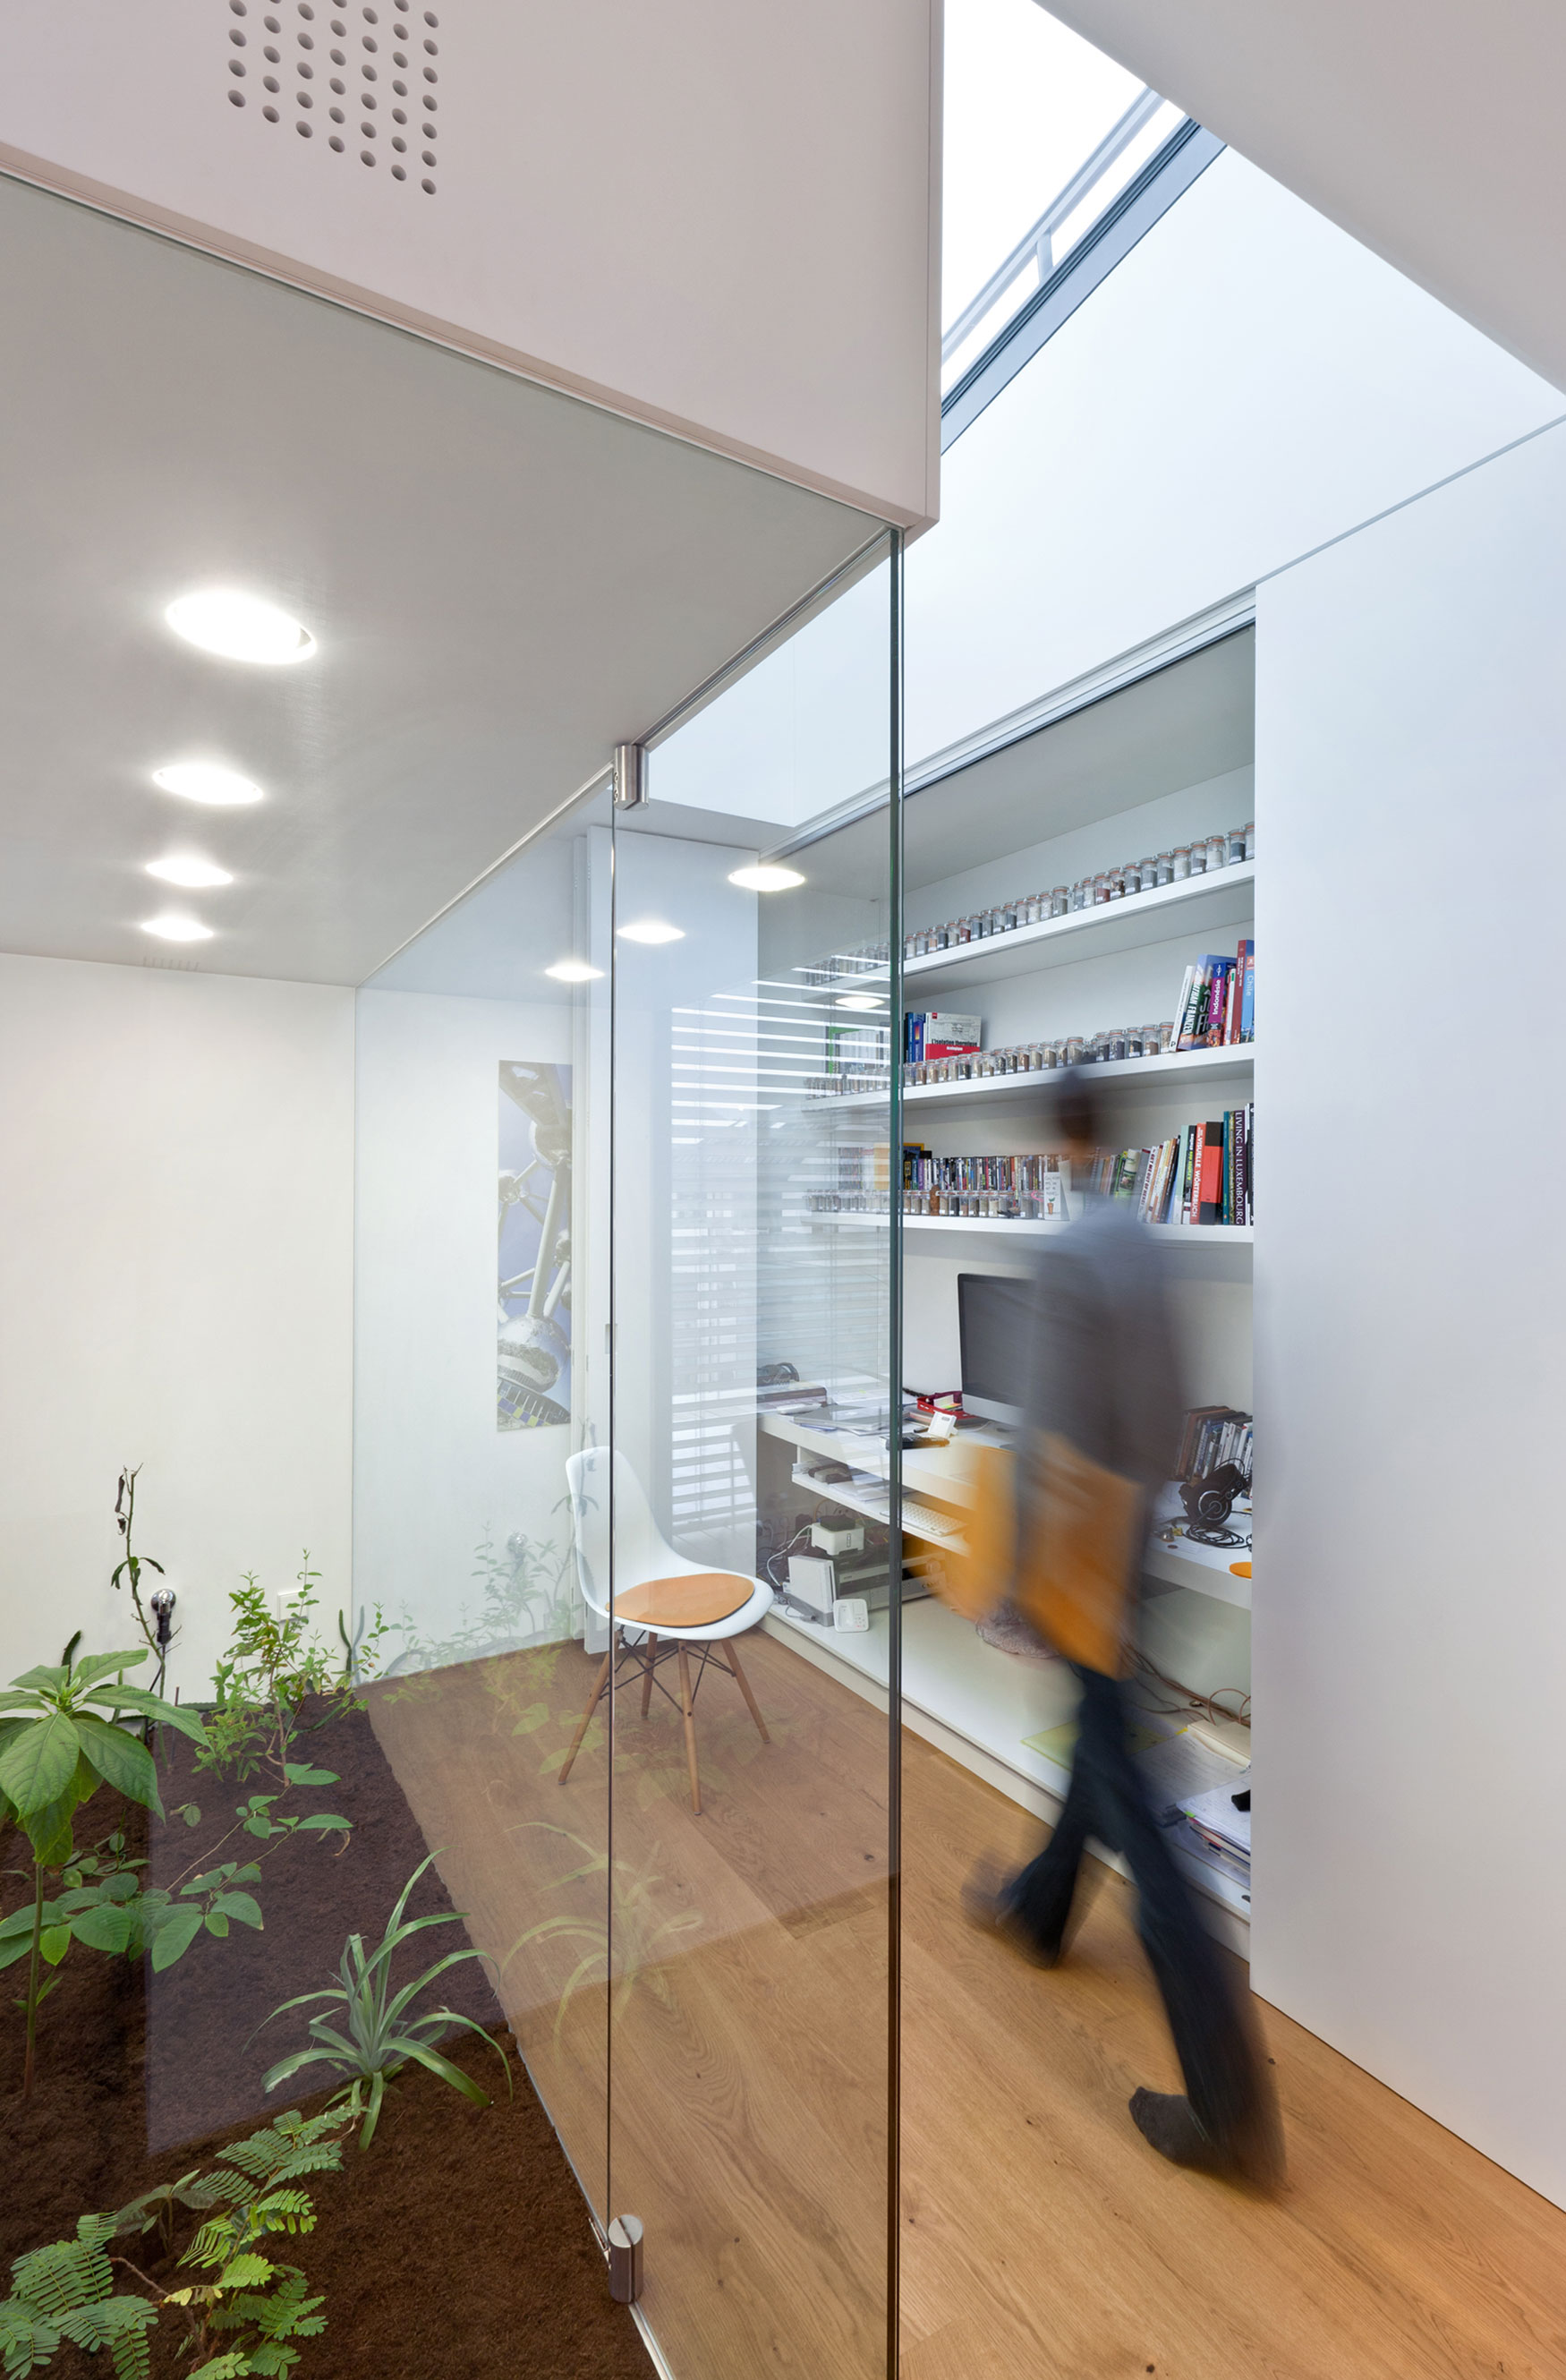 Housing building of seven units by METAFORM architecture (18)